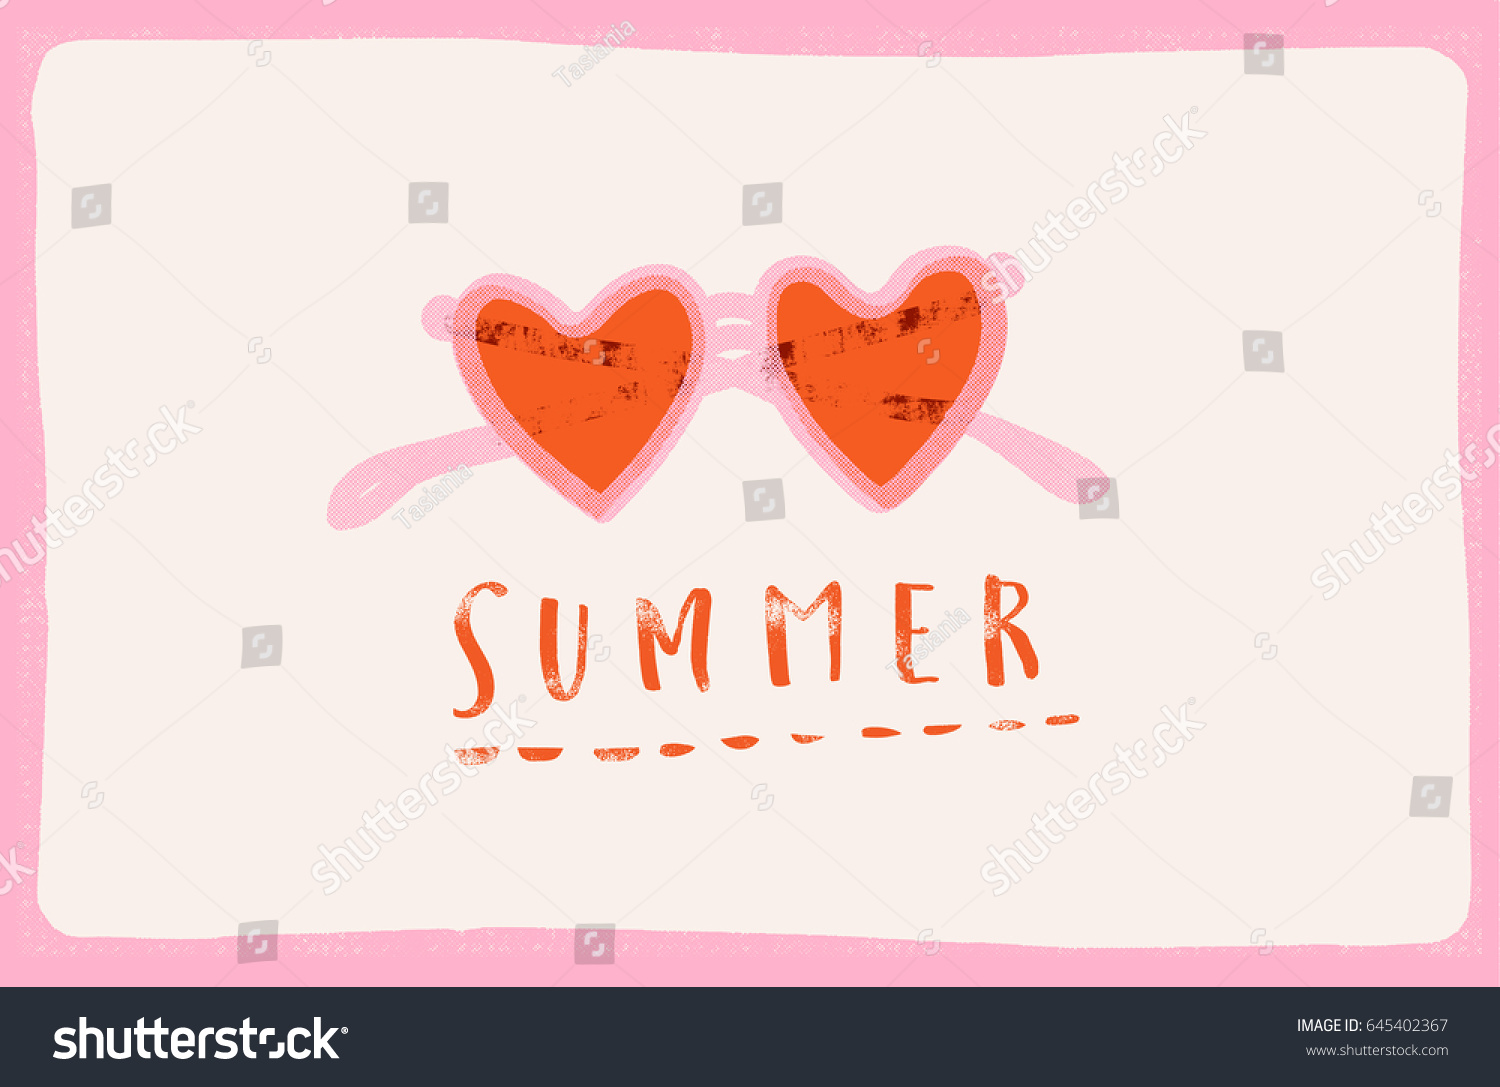 Summertime Retro Poster With Heart Sunglasses. Love Summer Text Quote Card.  Summer Beach Illustration